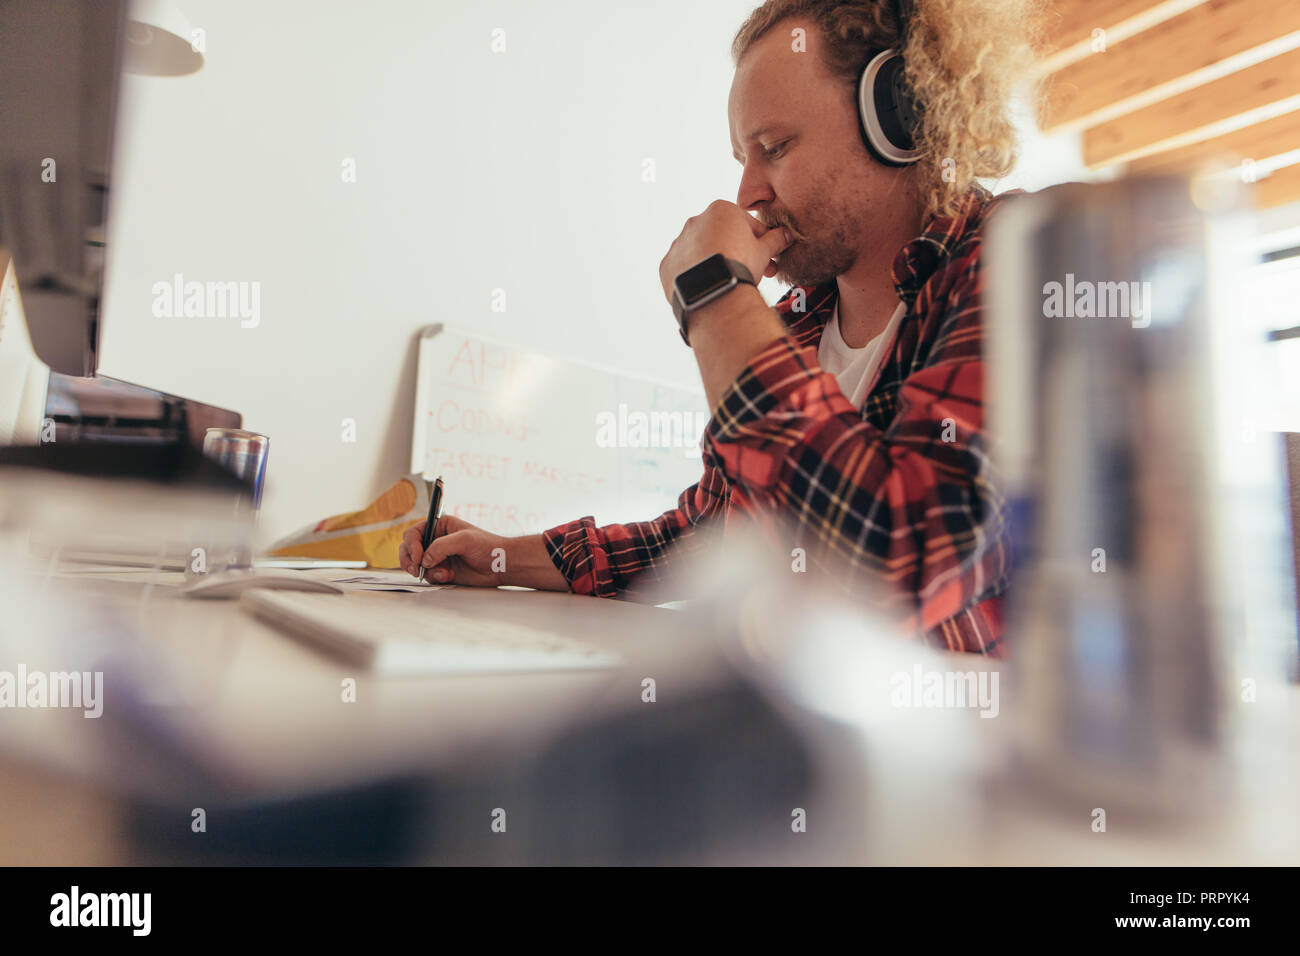 Man making some notes in copybook, sitting at small office table. Experience tech professional coding on a notepad in office. - Stock Image